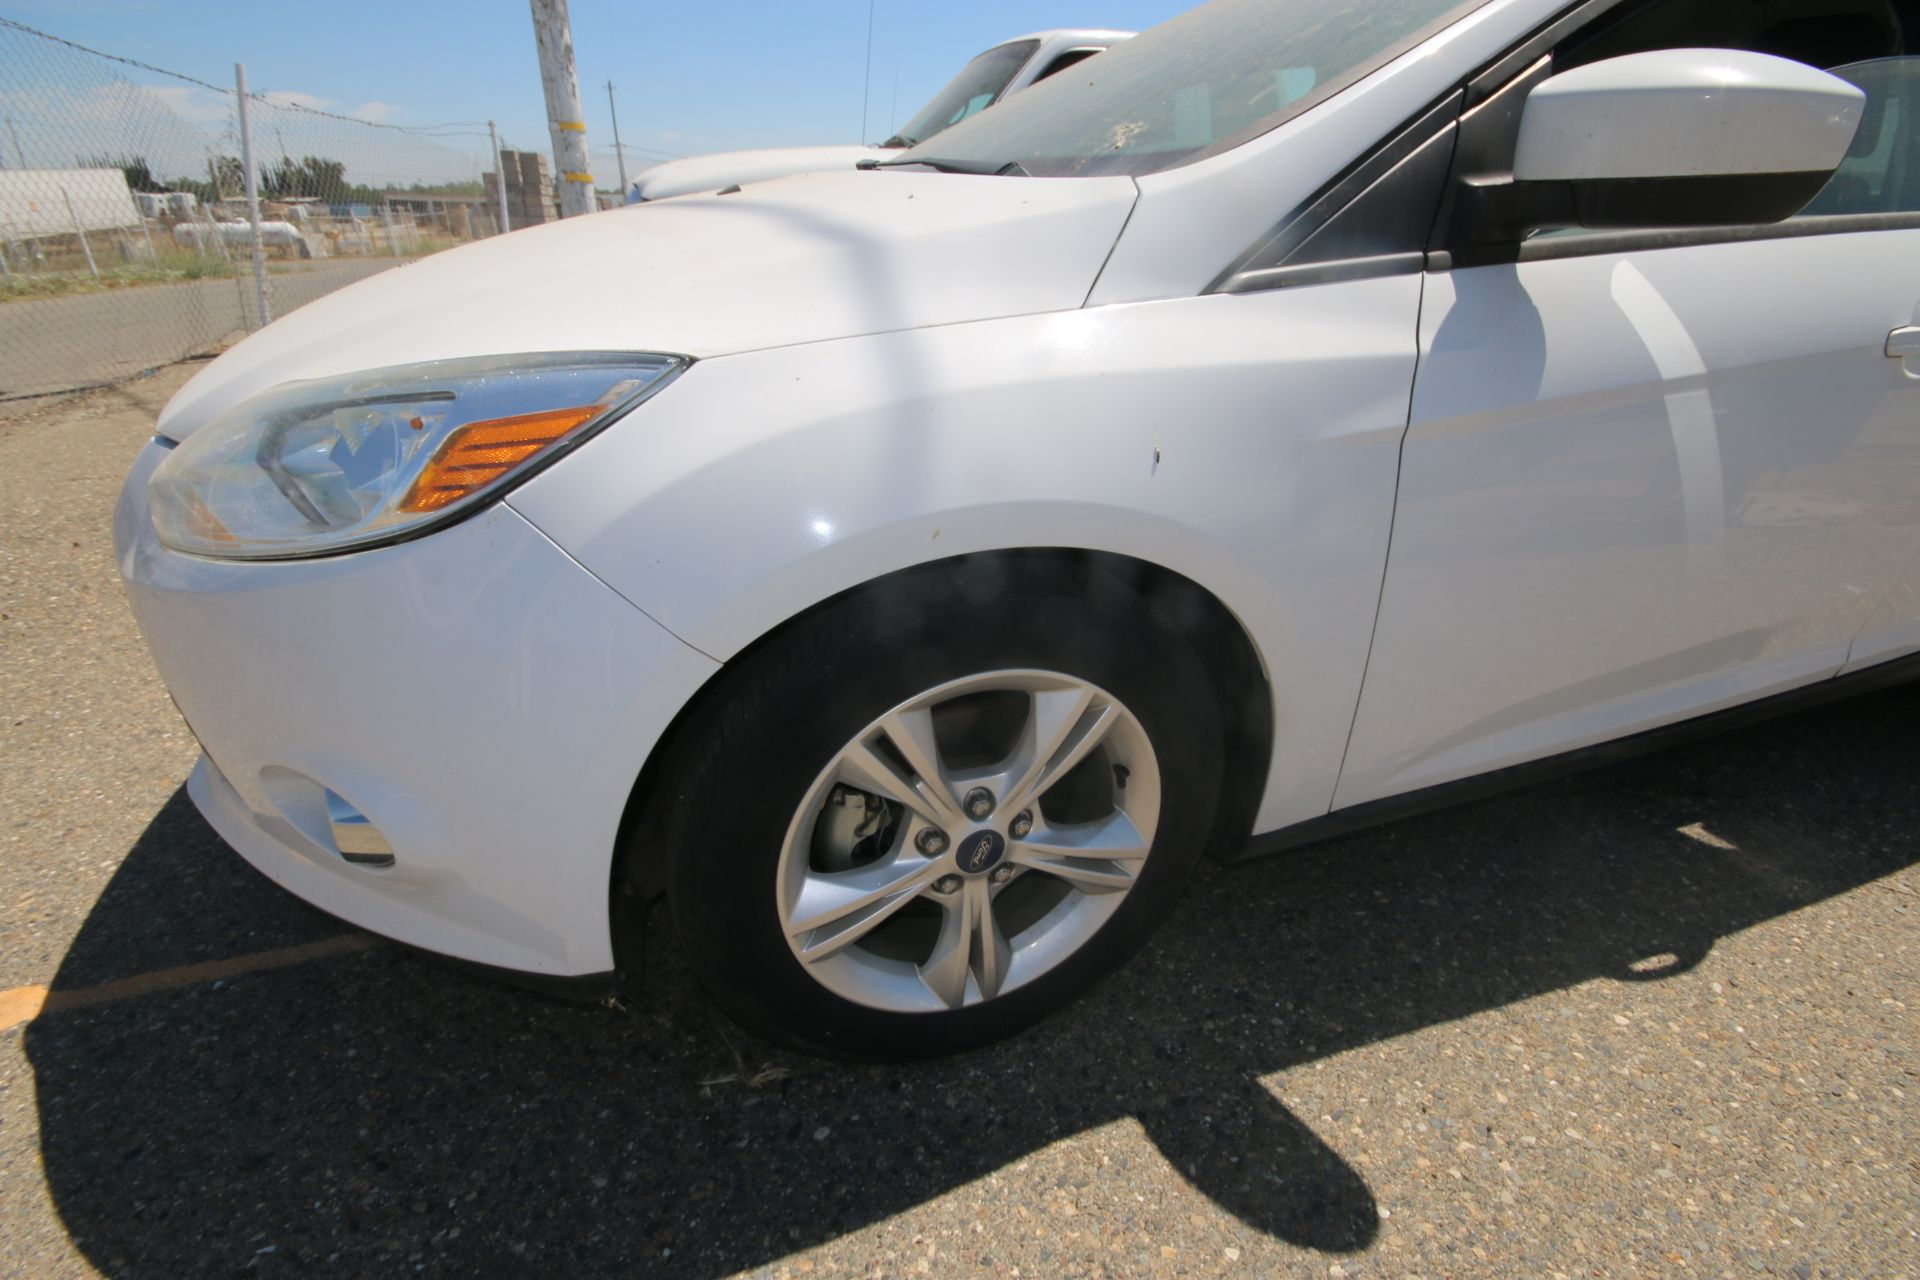 2012 White Ford Focus SE Hatchback 4D, VIN #: 1FAHP3K27CL423326, with 116,017 Miles, with 4-Doors, - Image 14 of 26